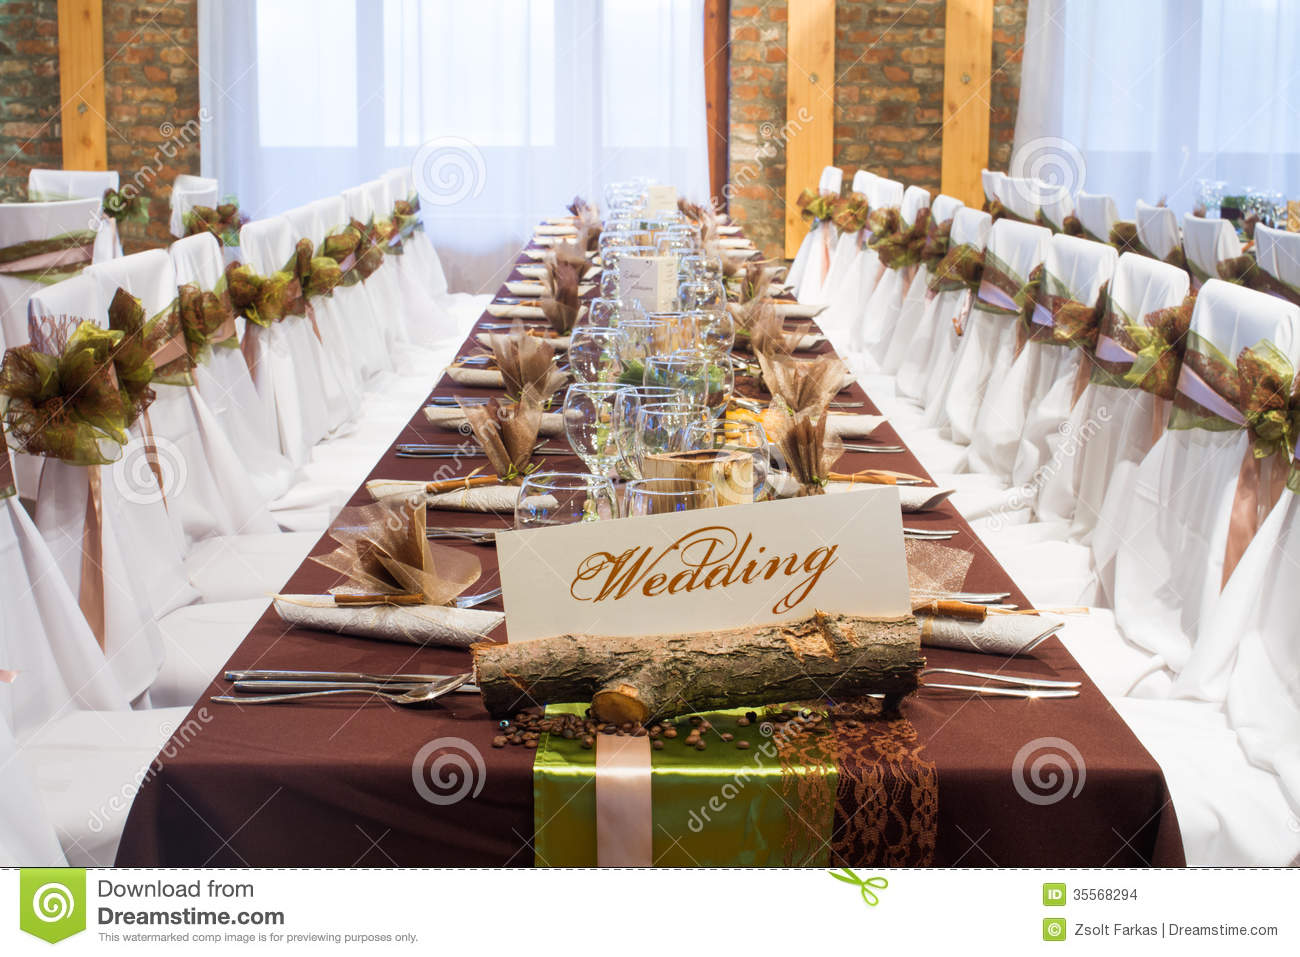 Special wedding table decorations stock photo image of